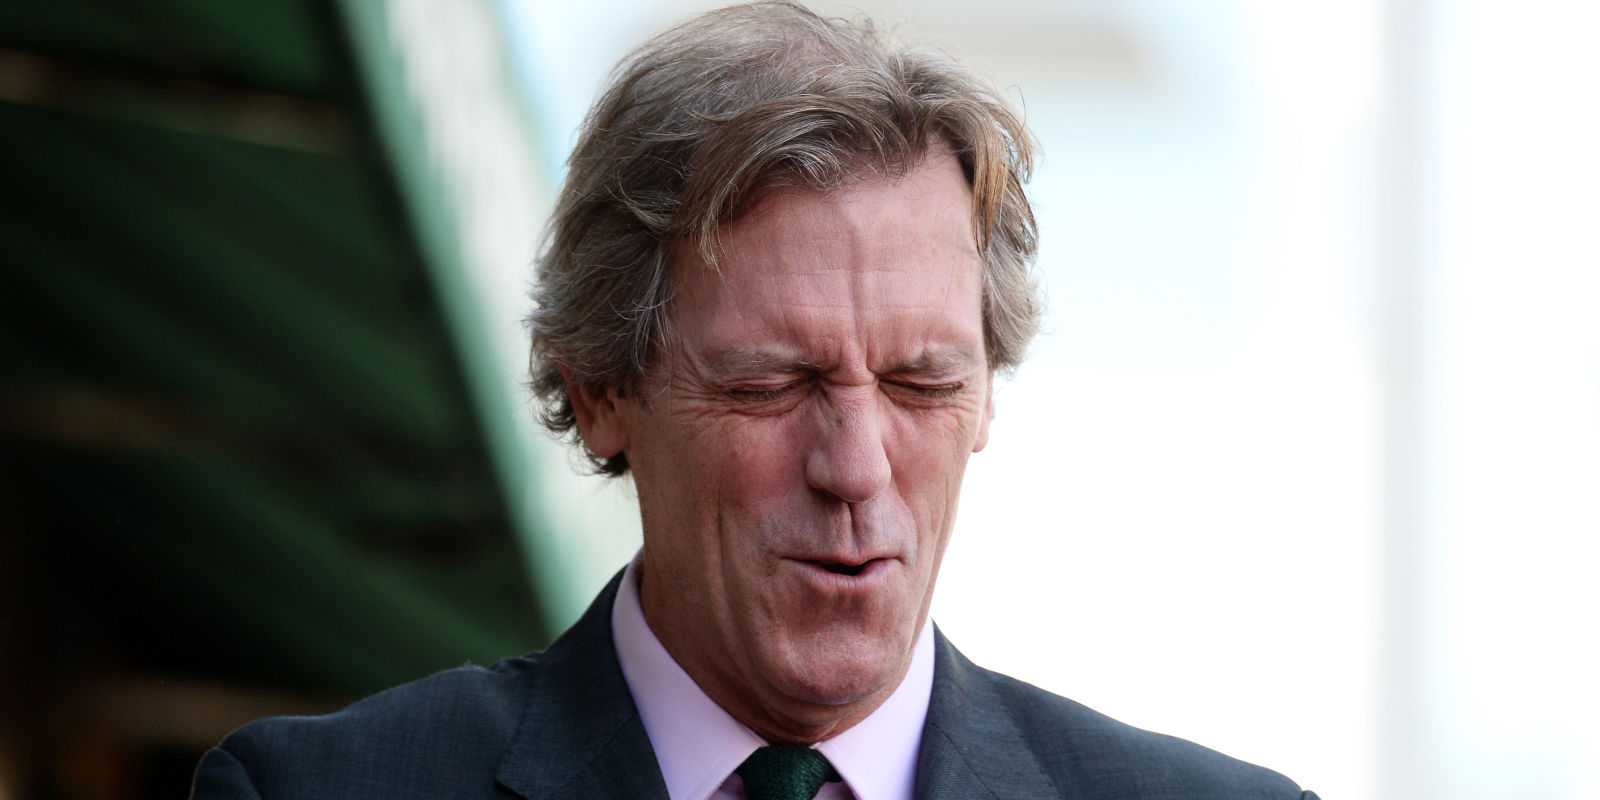 Hugh Laurie's reaction...